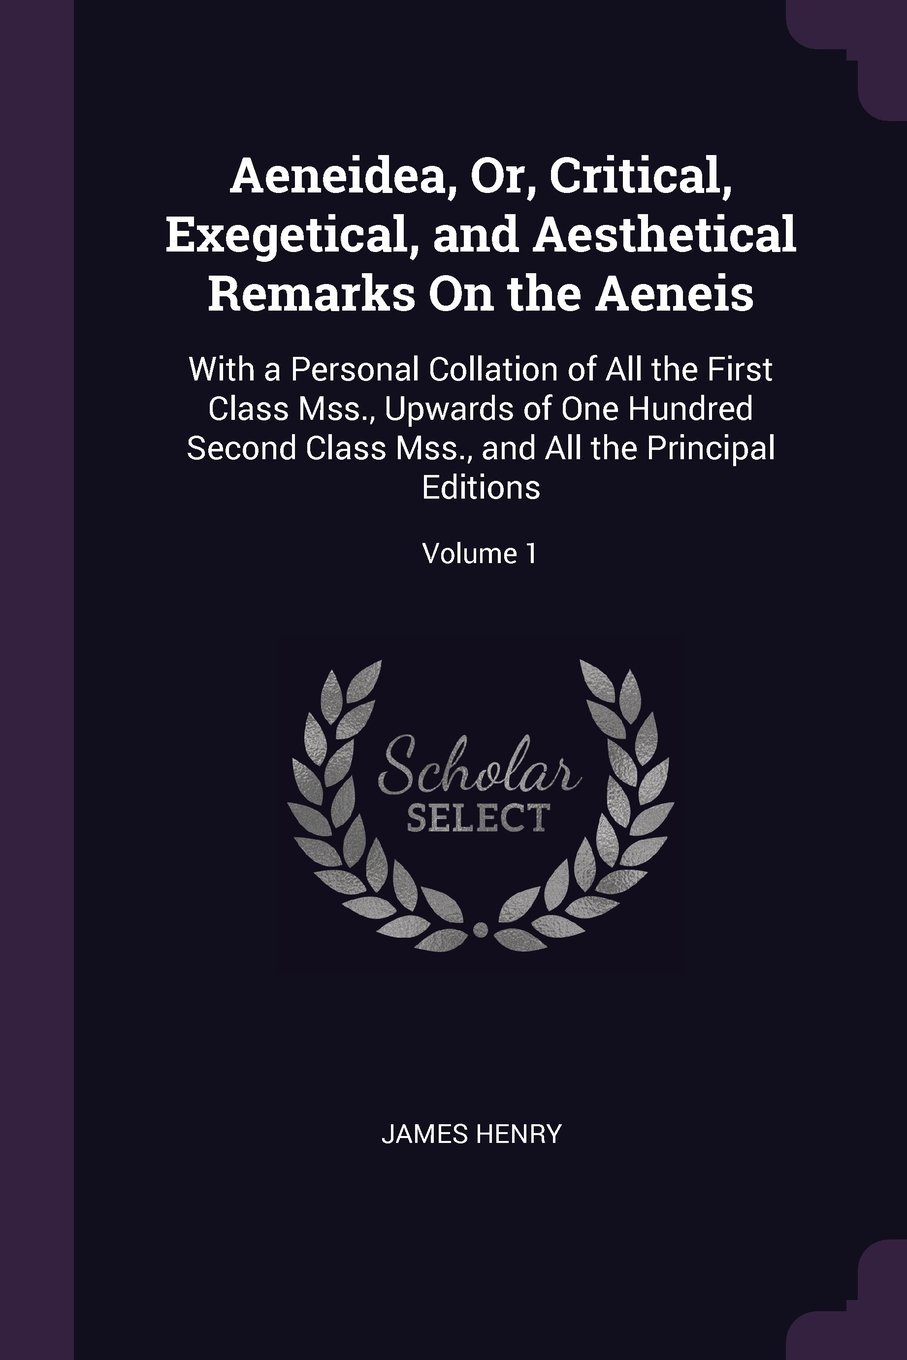 Aeneidea, Or, Critical, Exegetical, and Aesthetical Remarks On the Aeneis: With a Personal Collation of All the First Class Mss, Upwards of One and All the Principal Editions; Volume 1 pdf